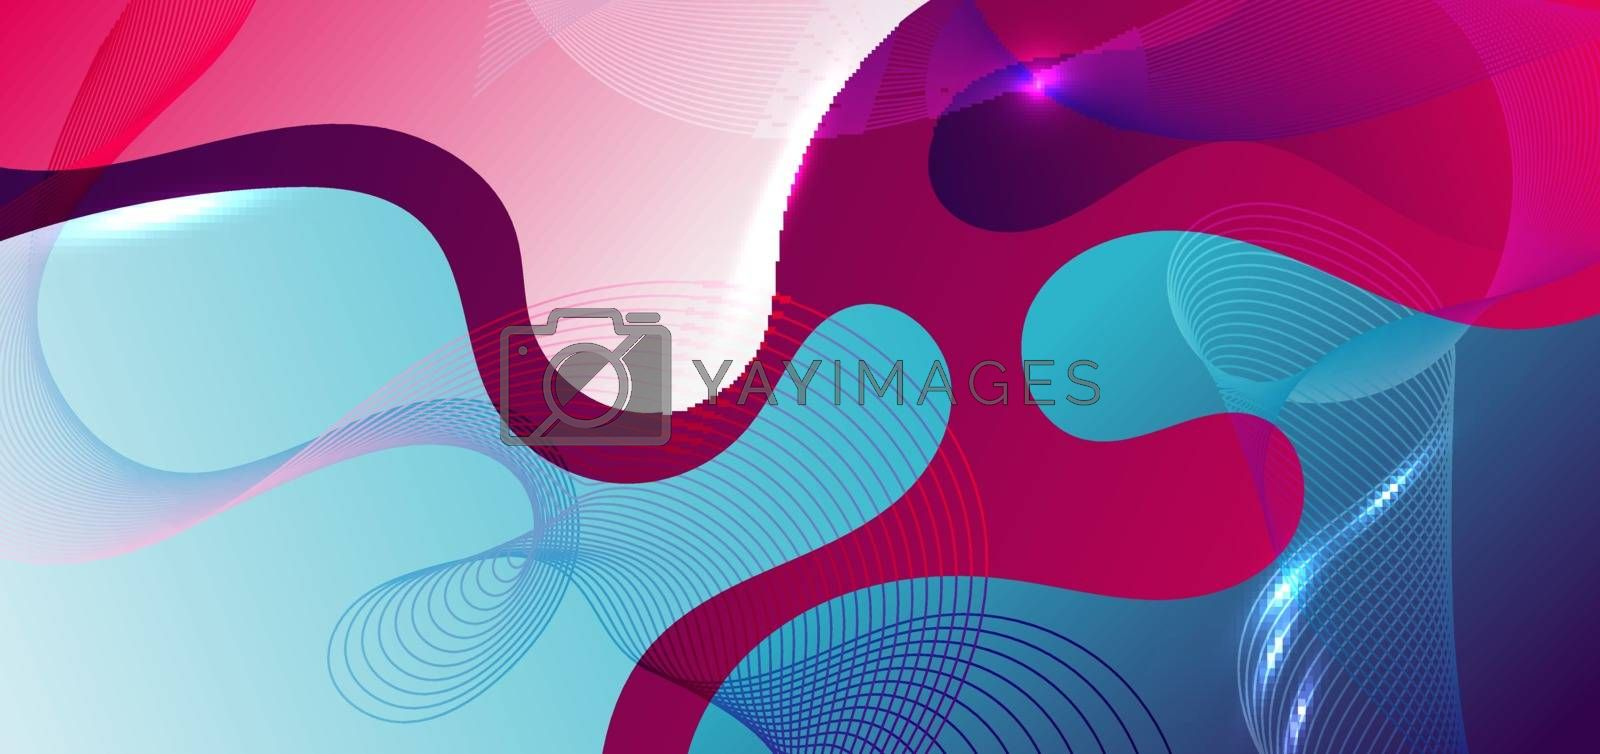 Abstract fluid shape blue and pink gradient background with wave line element. You can use for banner web, poster, brochure, template, etc. Vector illustration